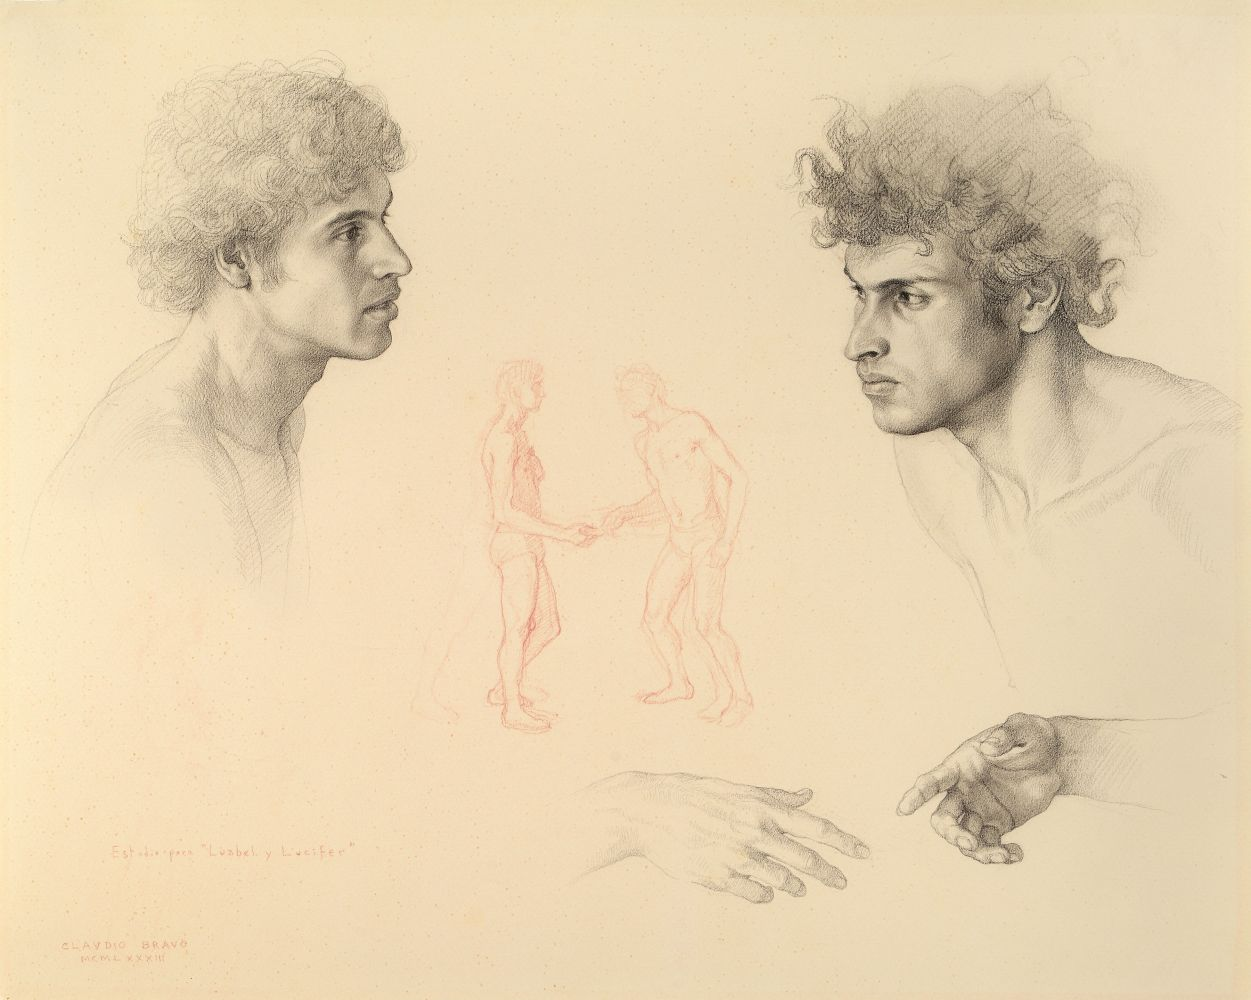 Two Heads and Hands (Study for Luzbel and Lucifer), 1983, pencil on paper, 15 3/4 x 19 1/2 inches